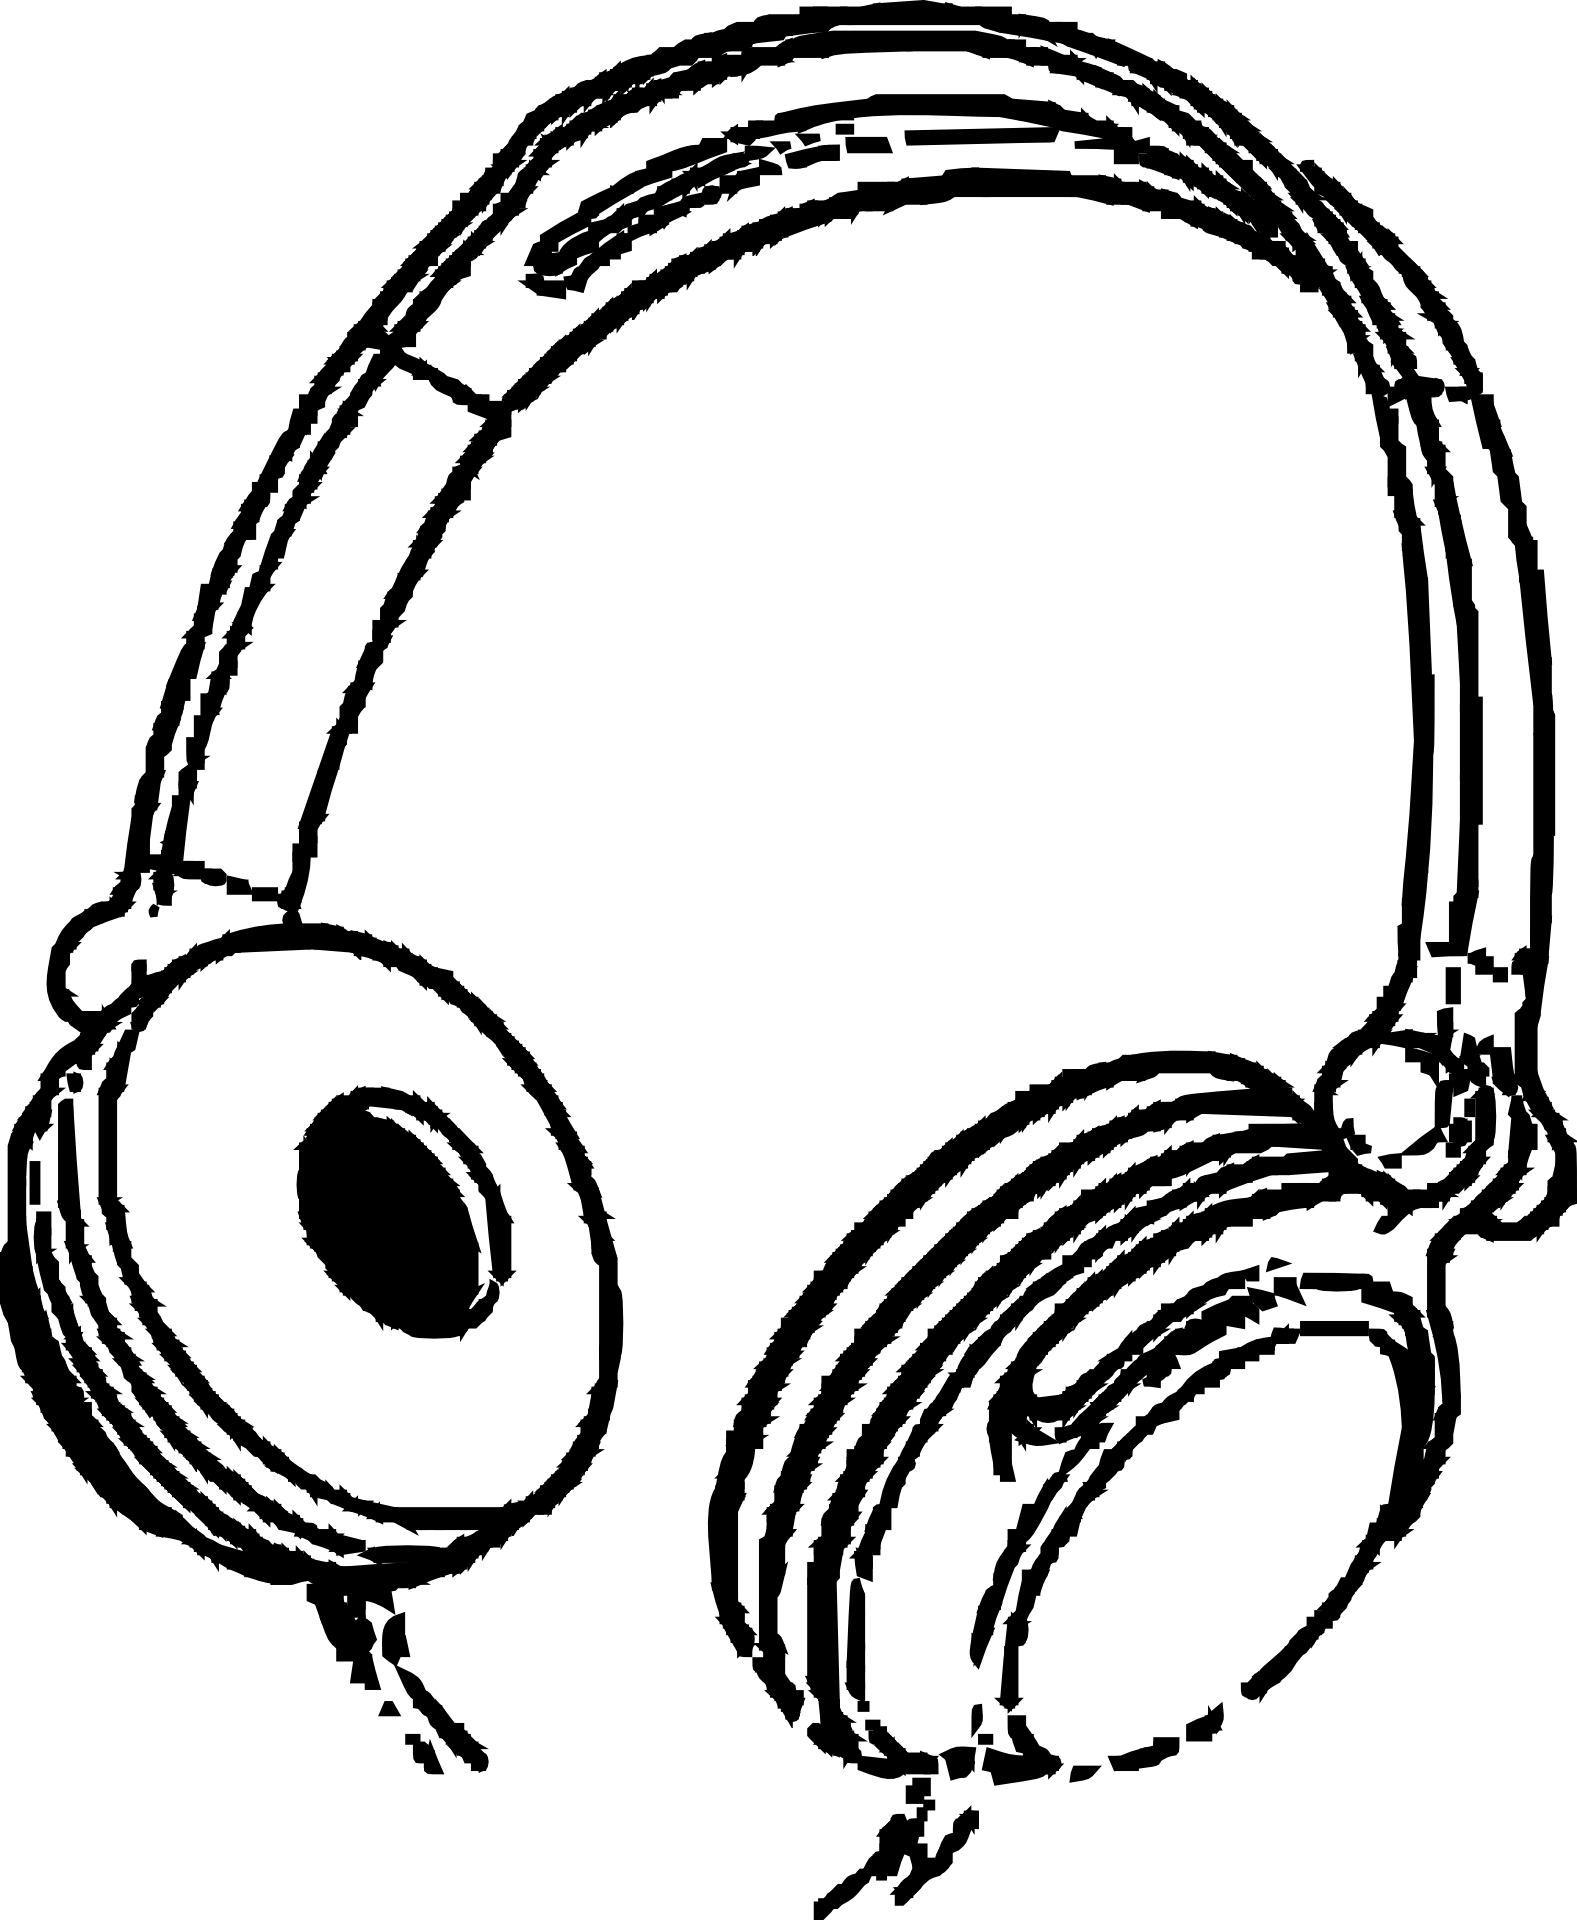 Headphones clipart black and white, Headphones black and.